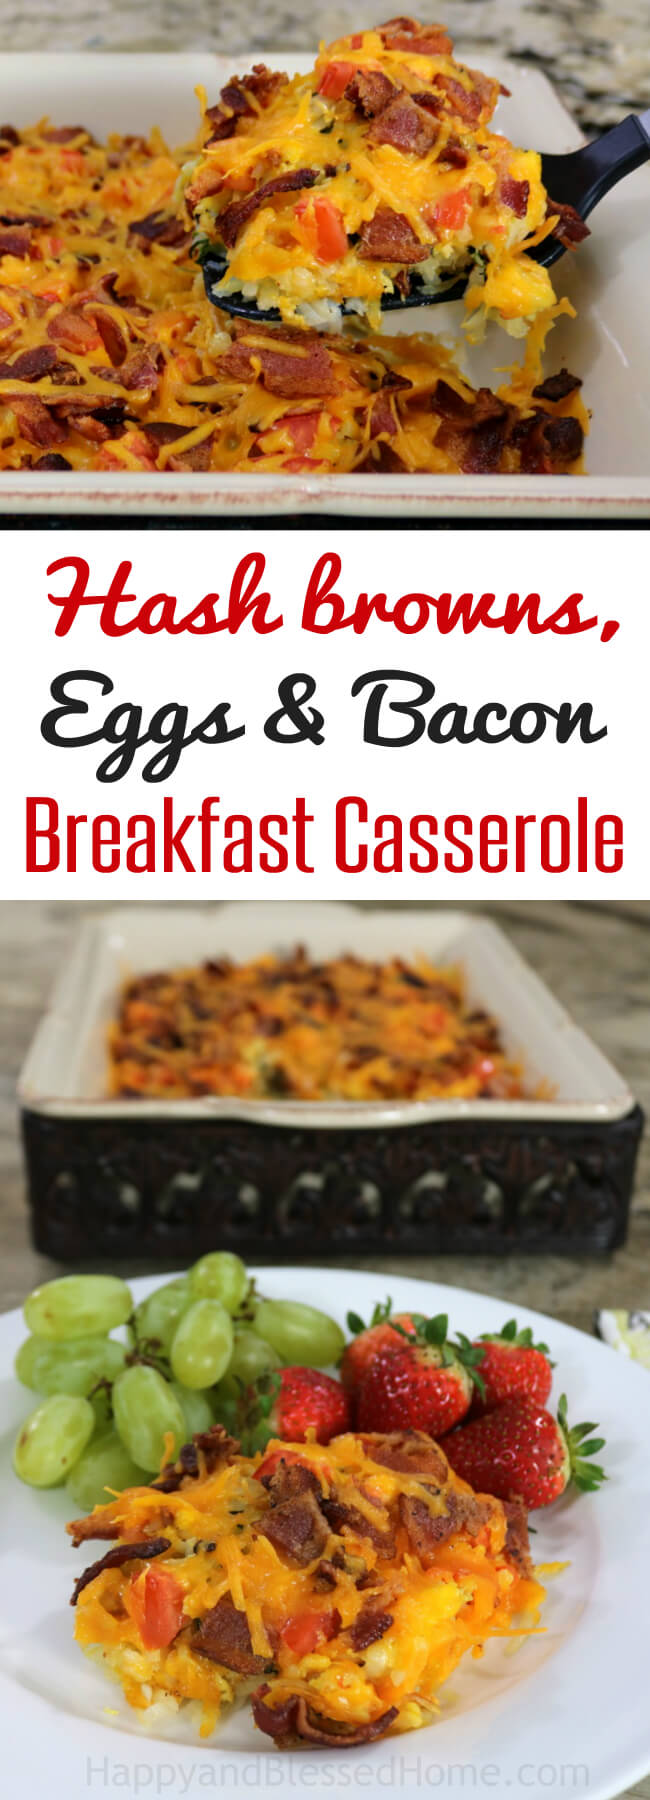 Easy Recipe: Hash browns, Eggs and Bacon Breakfast Casserole. This casserole dish is perfect for a laid-back weekend with family or you can heat some up in the microwave before work on a weekday. It's simple and so easy to make - and it feeds a crowd when needed.